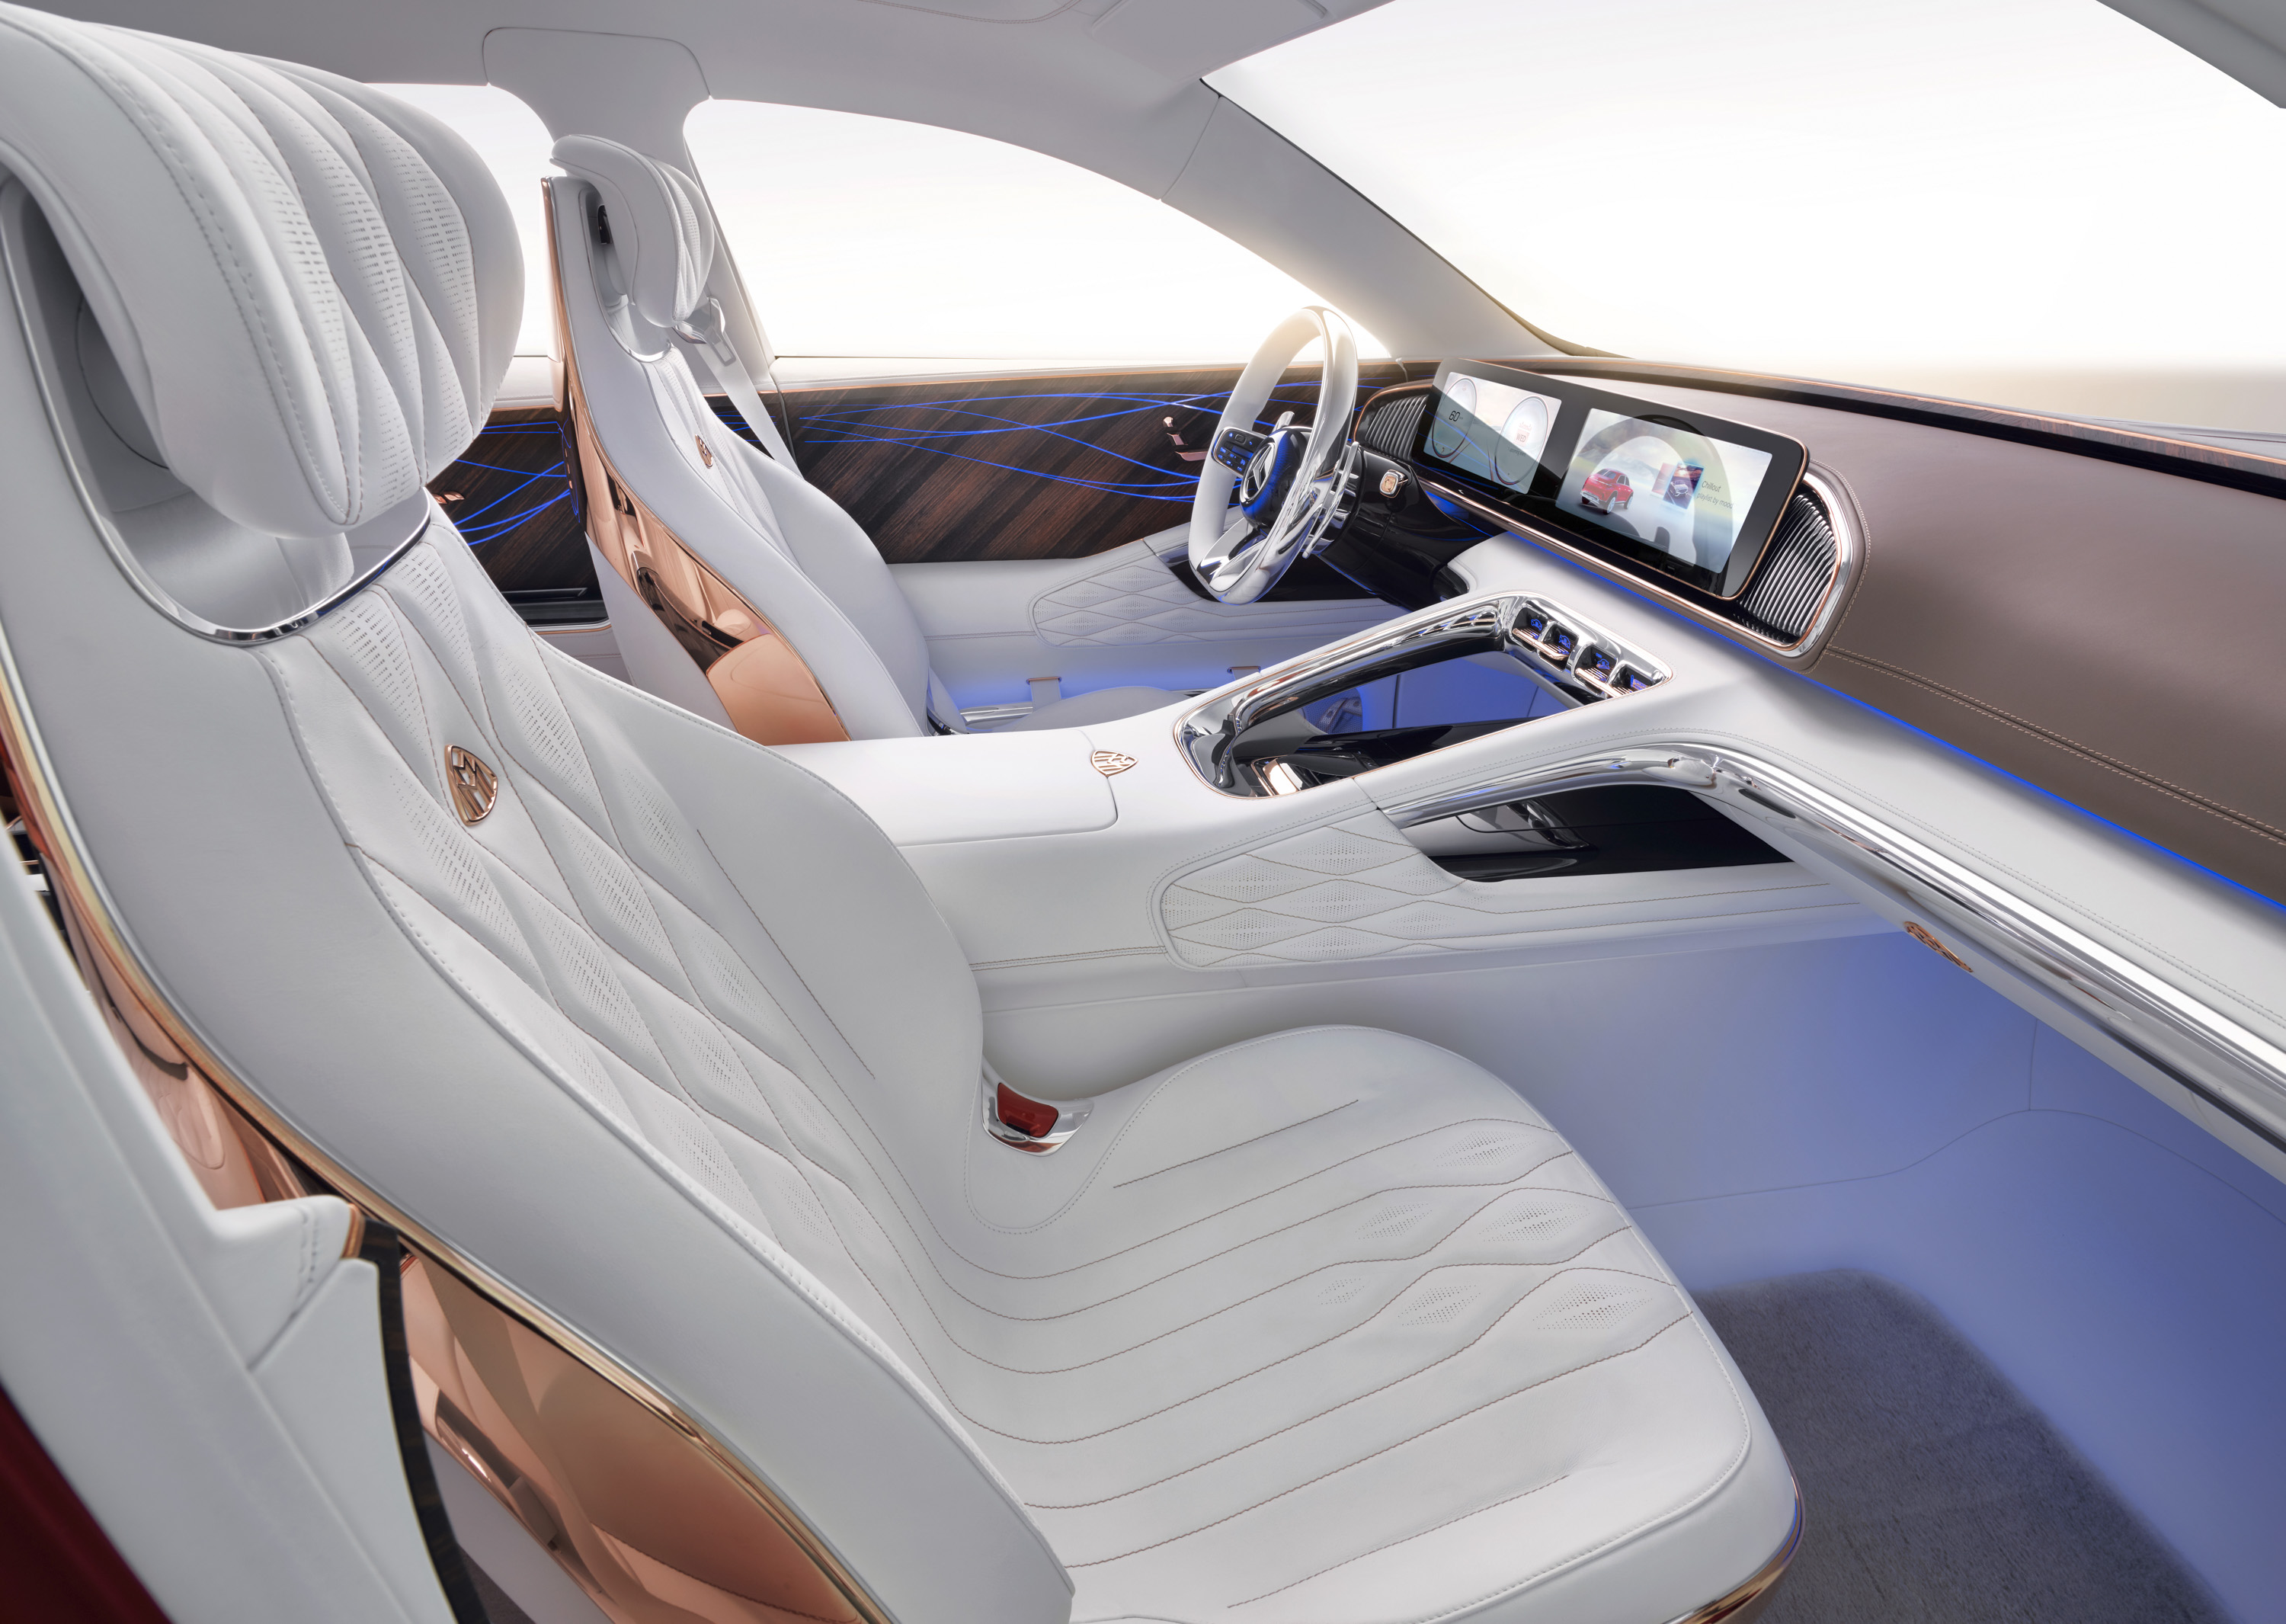 Luxury Car Vision >> The 2018 Vision Maybach Ultimate Luxury Concept Could Lend Dna To